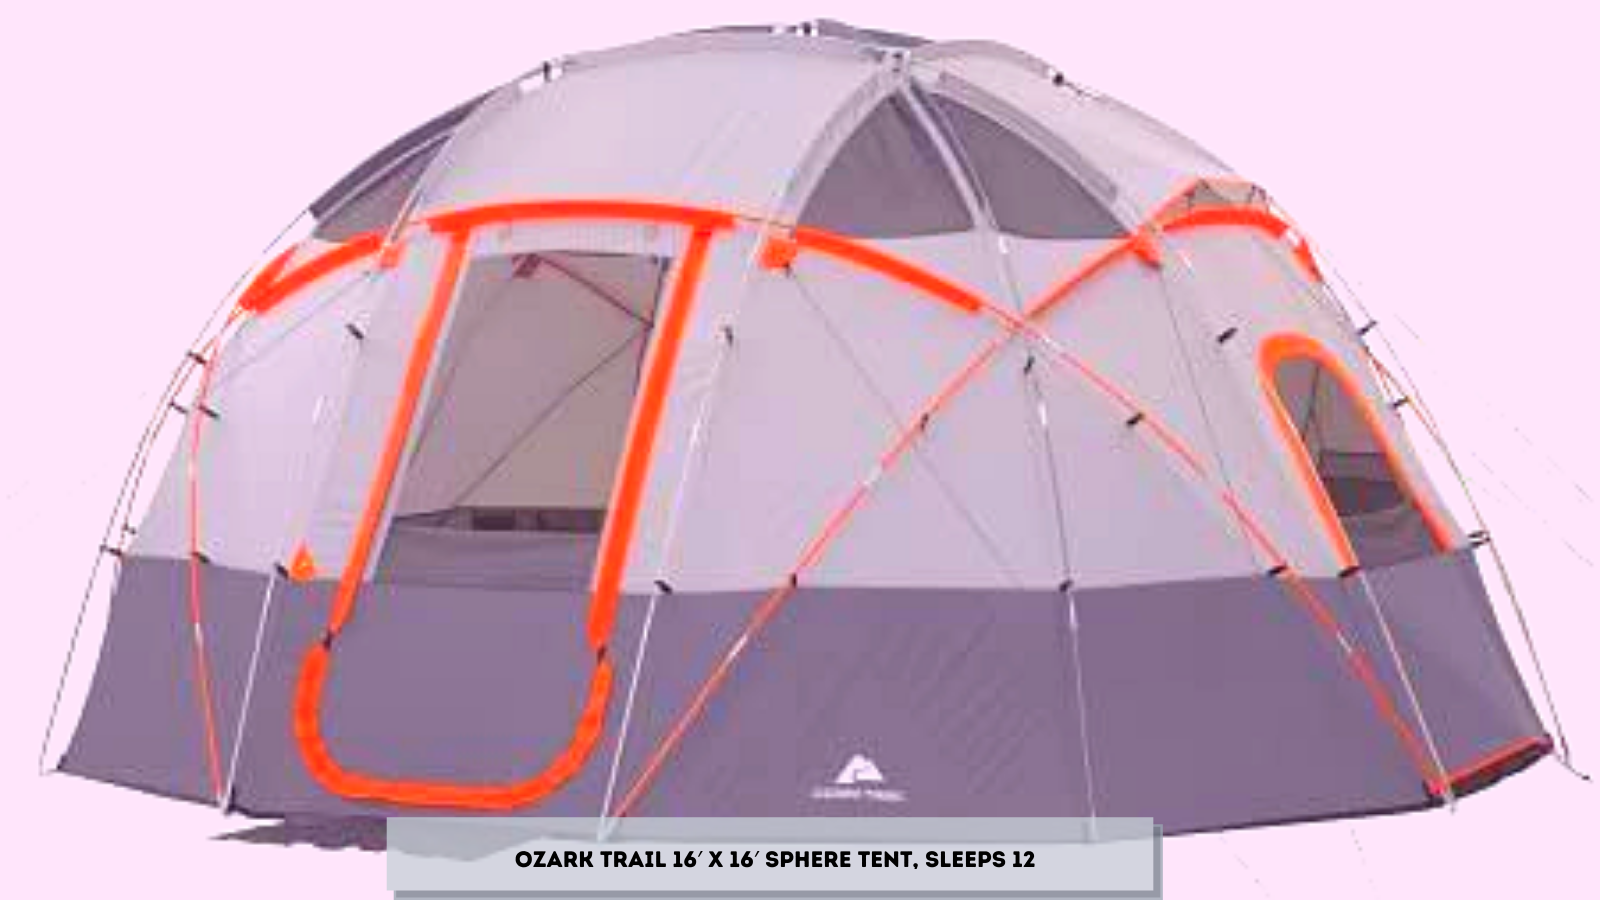 Ozark Trail 16′ x 16′ Sphere Tent, Sleeps 12